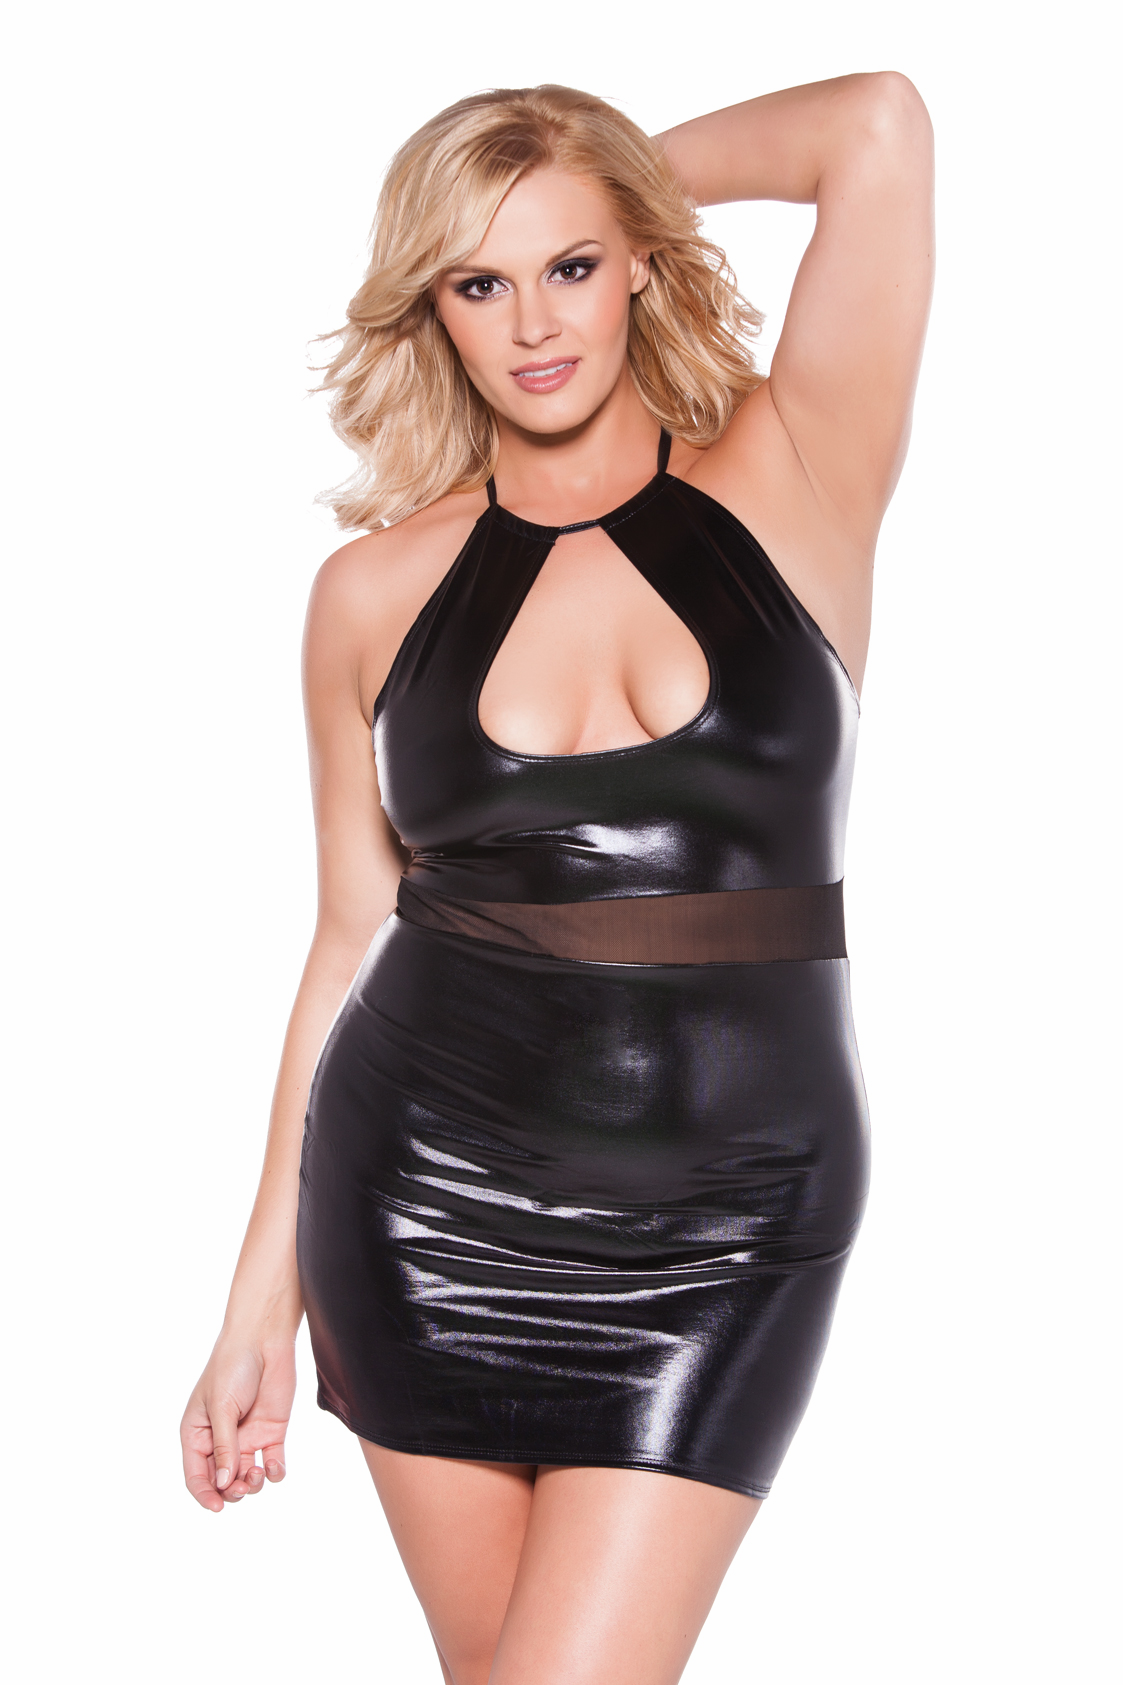 17-7602xk Plus Size Wet Look Halter Dress by Allure